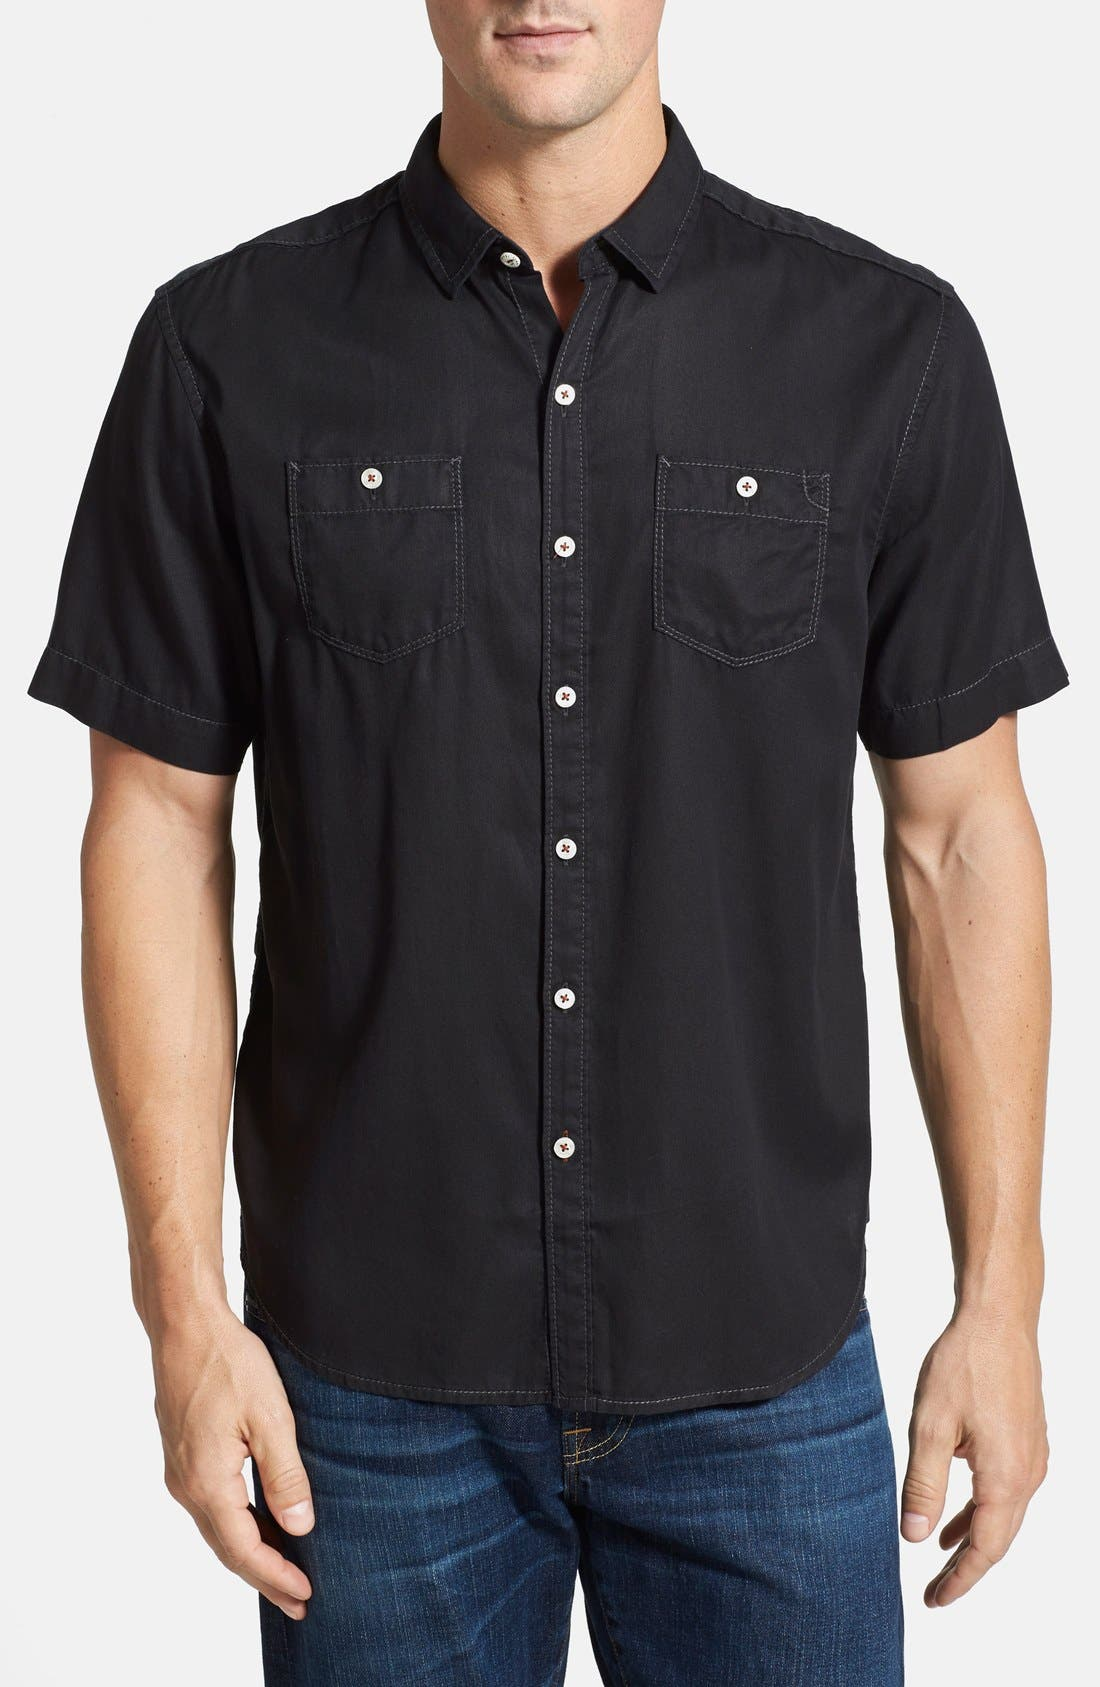 'New Twilly' Island Modern Fit Short Sleeve Twill Shirt,                             Main thumbnail 1, color,                             001